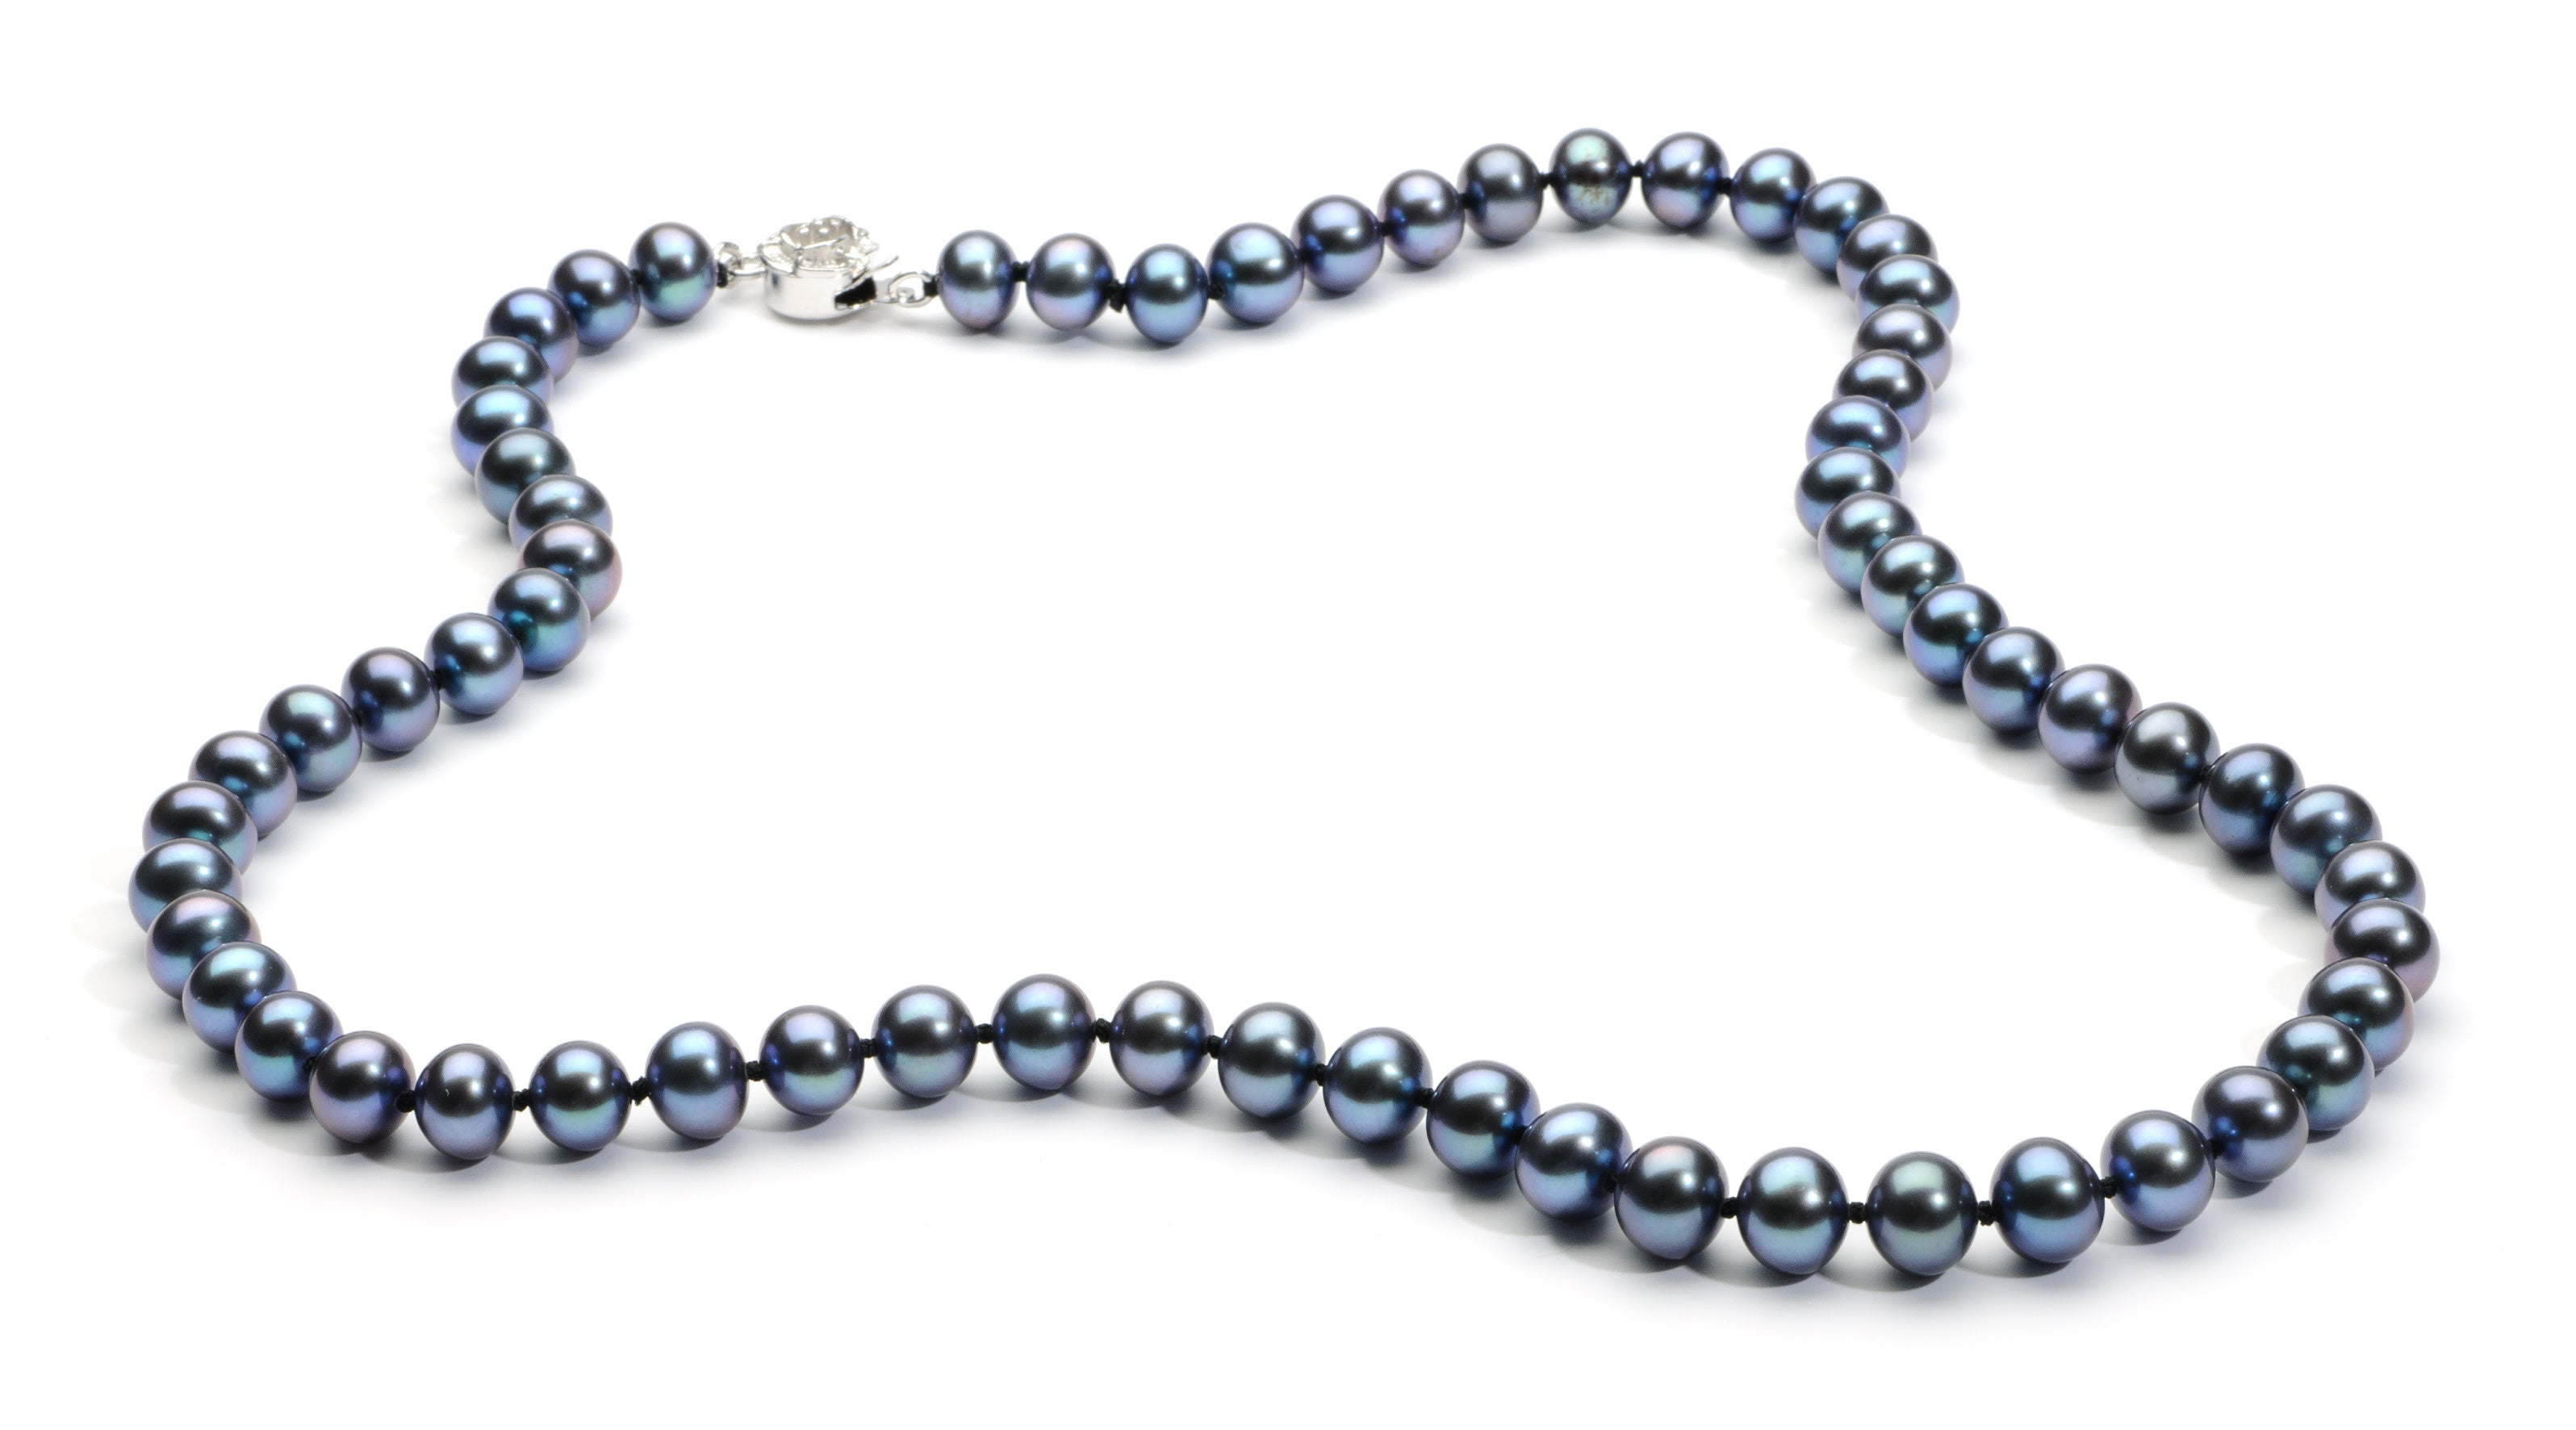 6.0-7.0 mm Black Freshwater Pearl Necklace